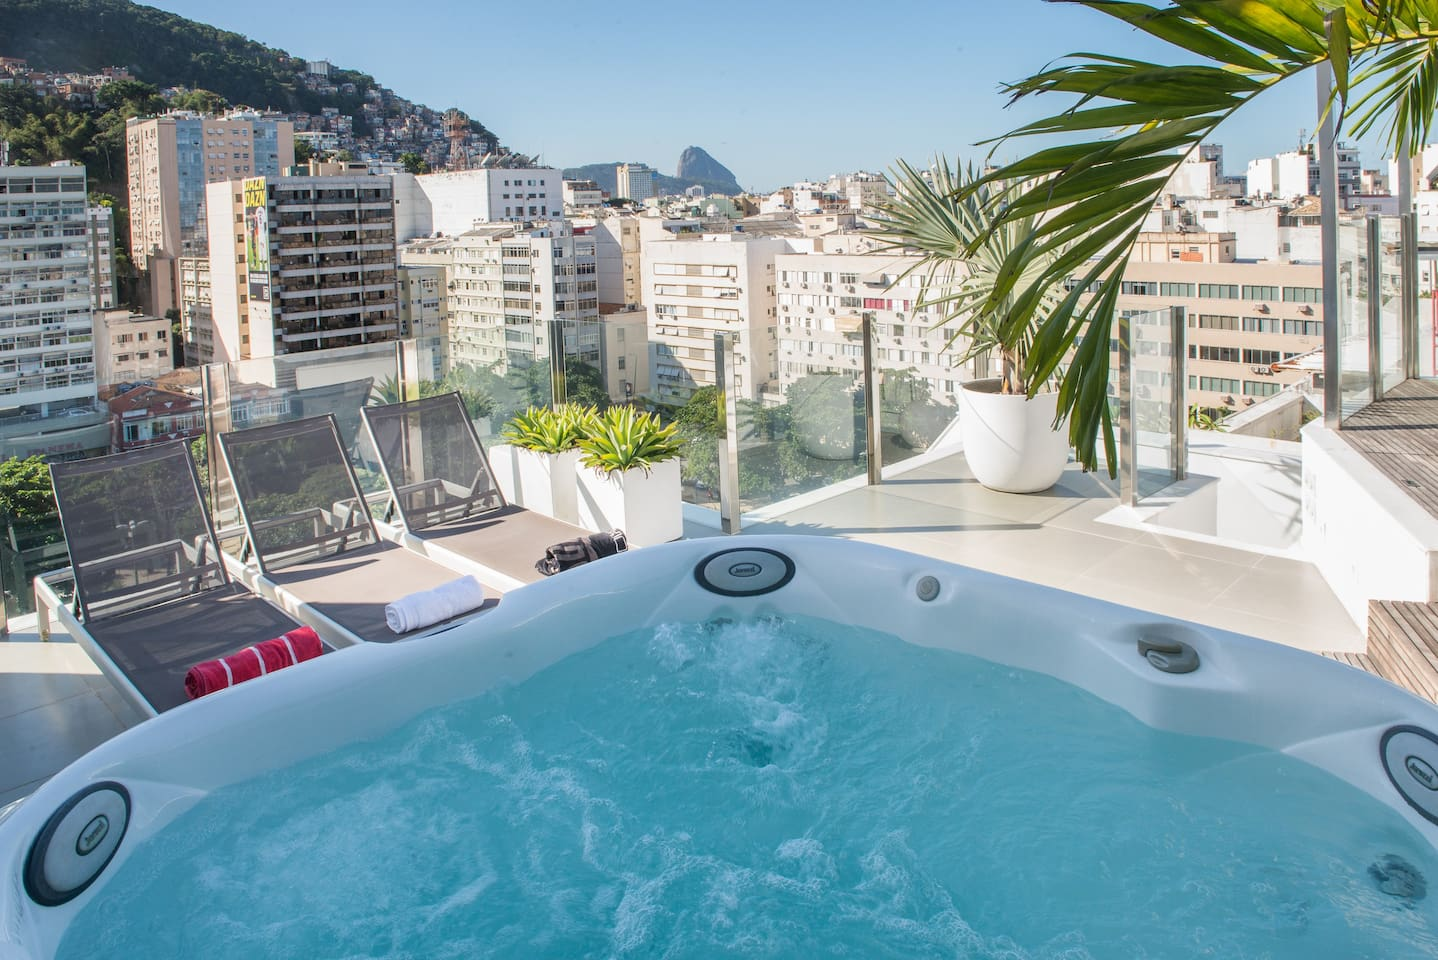 Jacuzzi with Sugar Loaf view